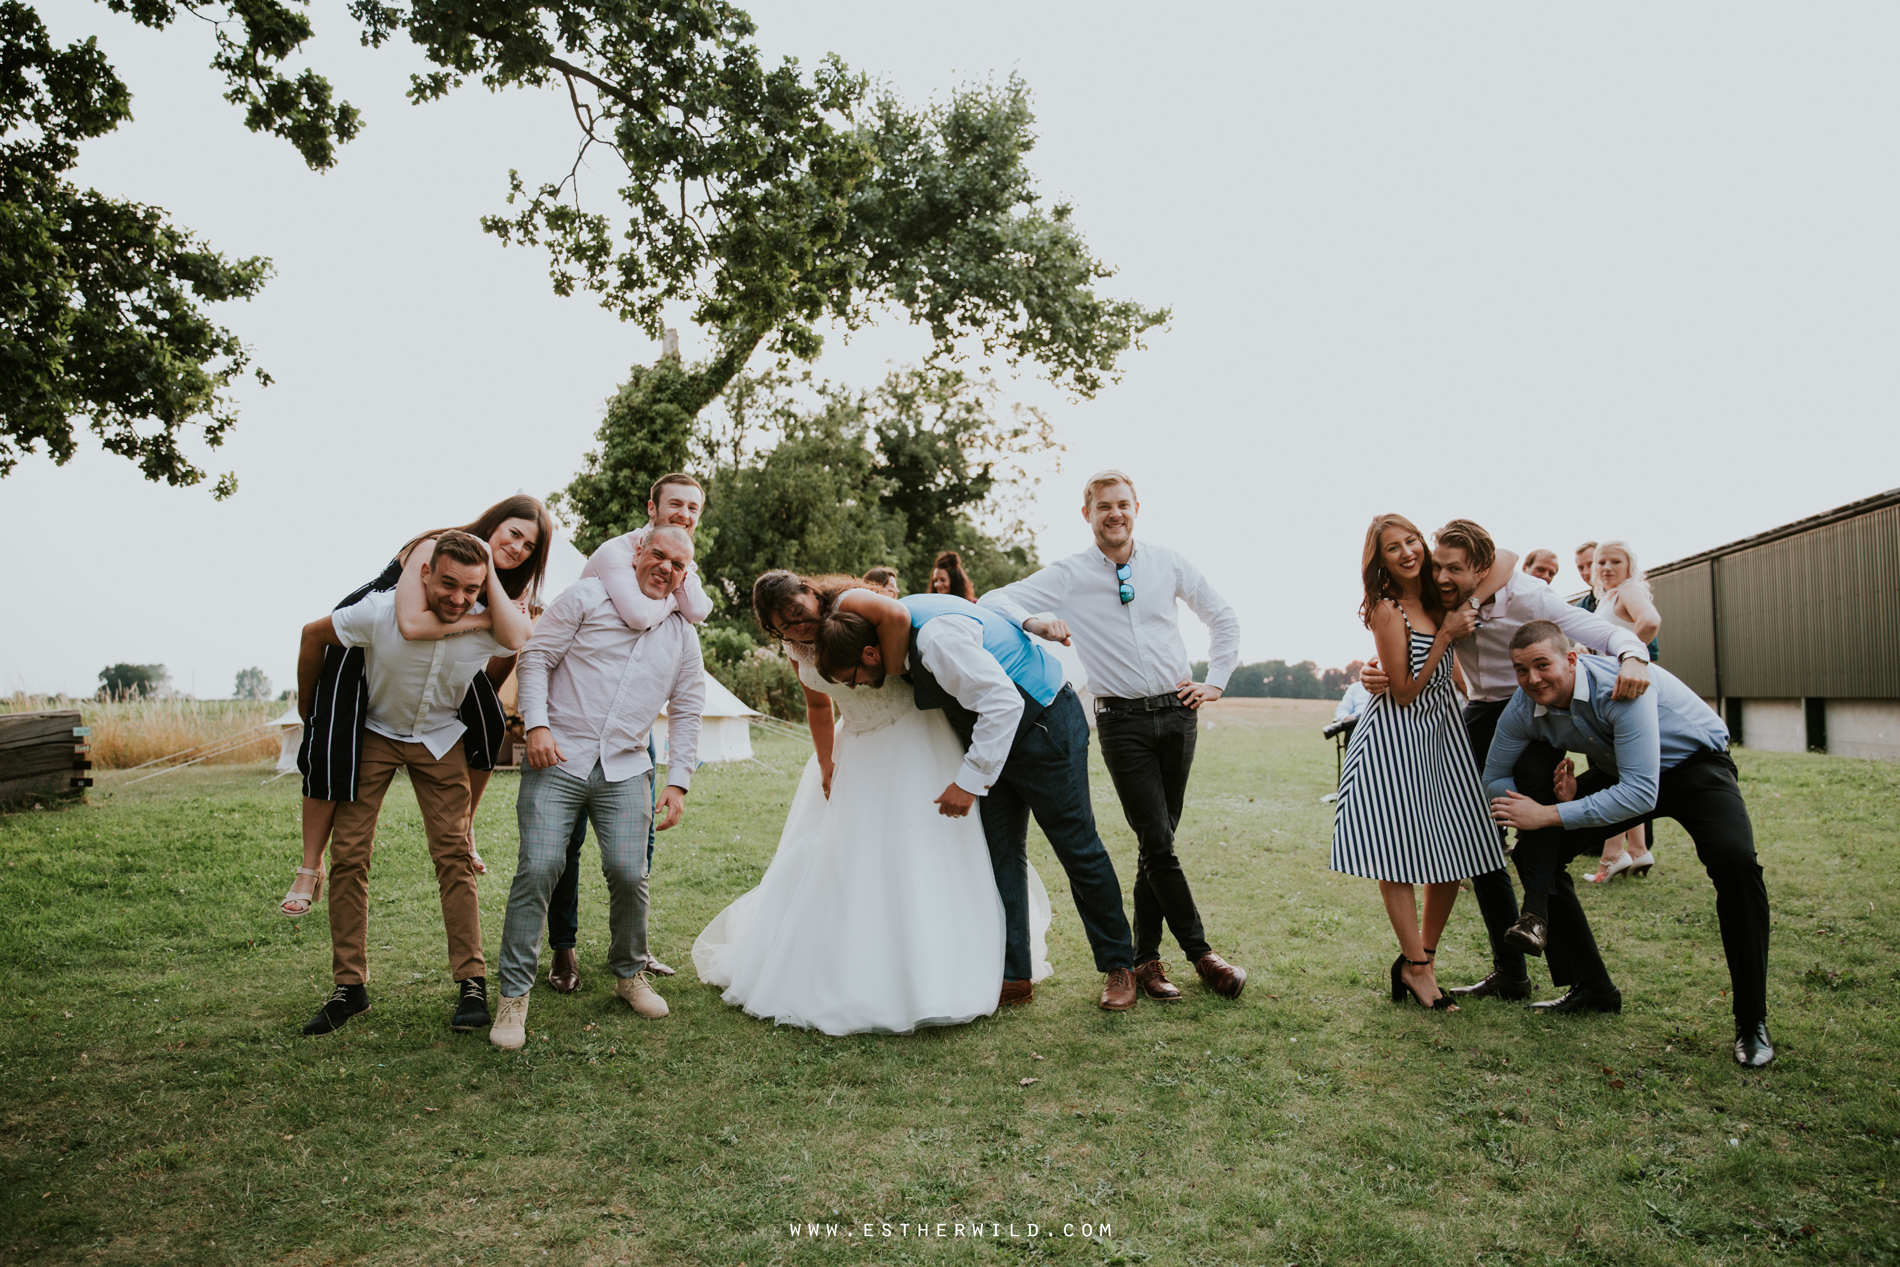 The_Red_Barn_Wedding_Kings_Lynn_Norfolk_IMG_2872.jpg